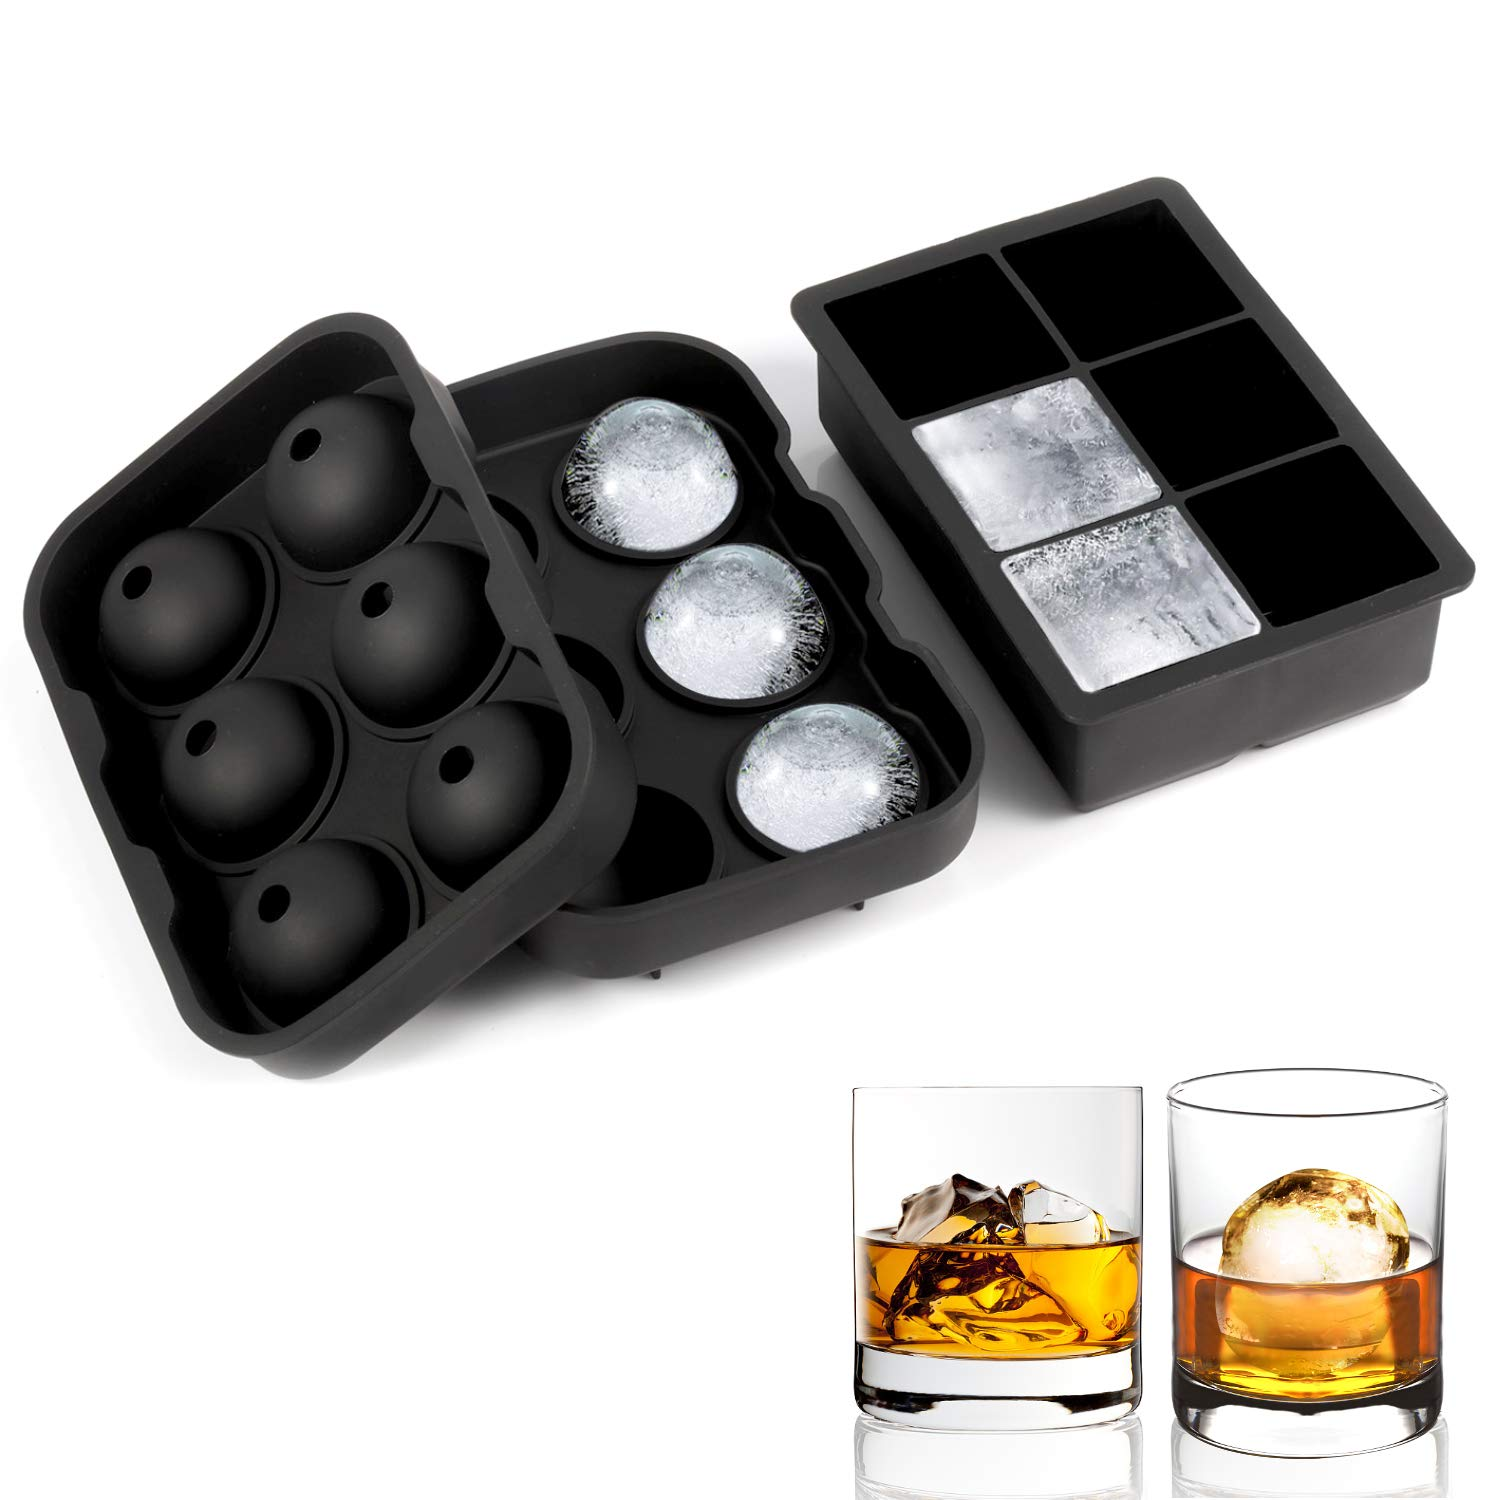 Ice Cube Trays Silicone, Ice Ball Mold Large Ice Cube Molds Reusable and BPA Free Ice Tray for Whiskey Cocktails and Bourbon - 2 Pack (dark-black) by Adoric